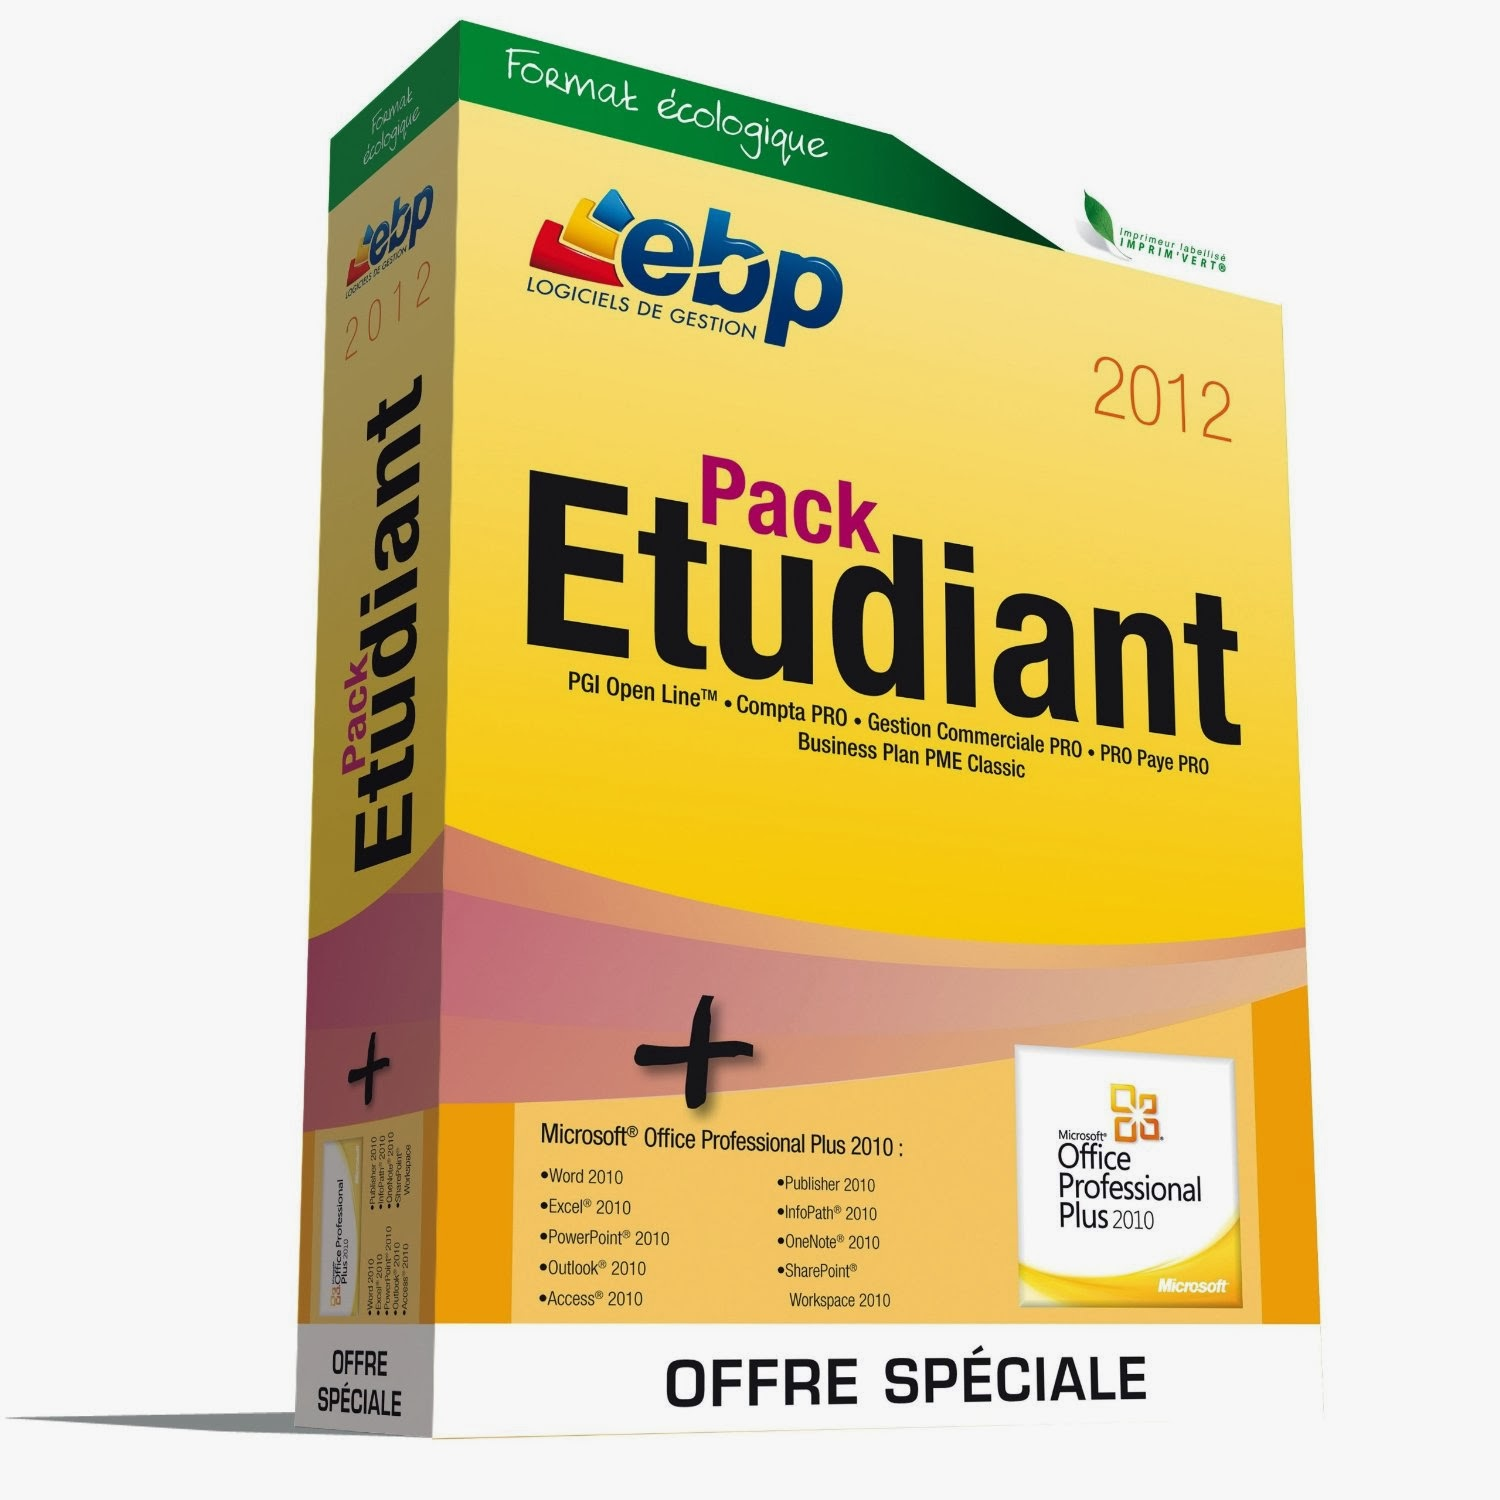 Ebp pack etudiant 2012 offre sp ciale ms 2010 keygen crack telechargement gratuit windows - Pack office etudiant 2013 ...